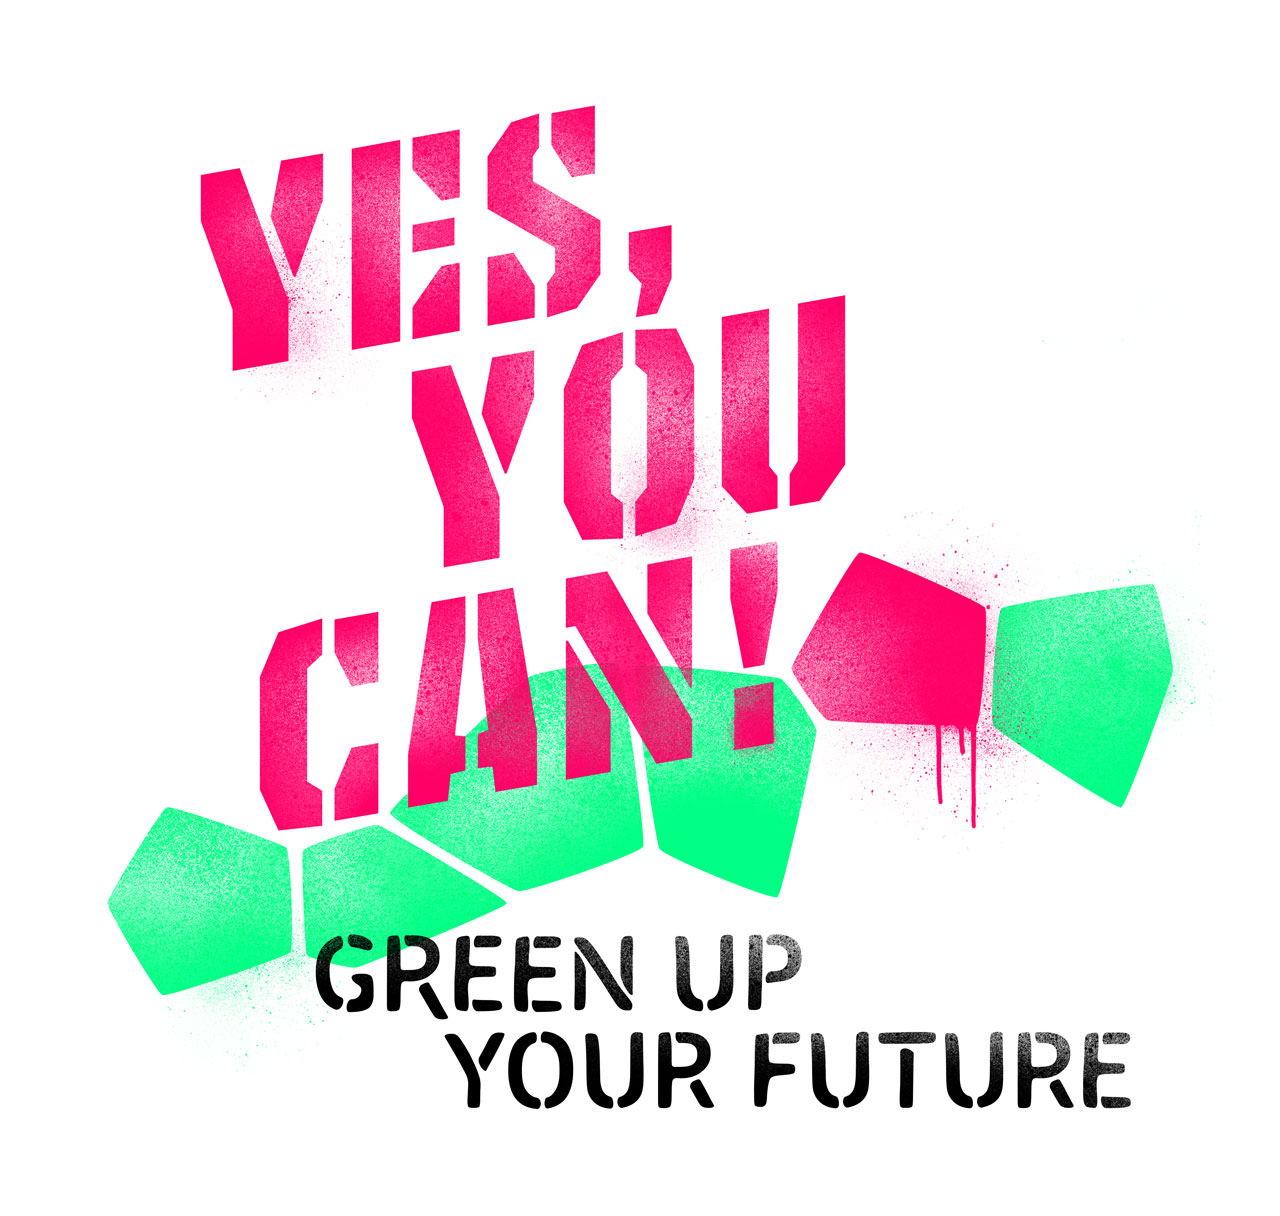 YES, YES YOU CAN! GREEN UP YOUR FUTURE